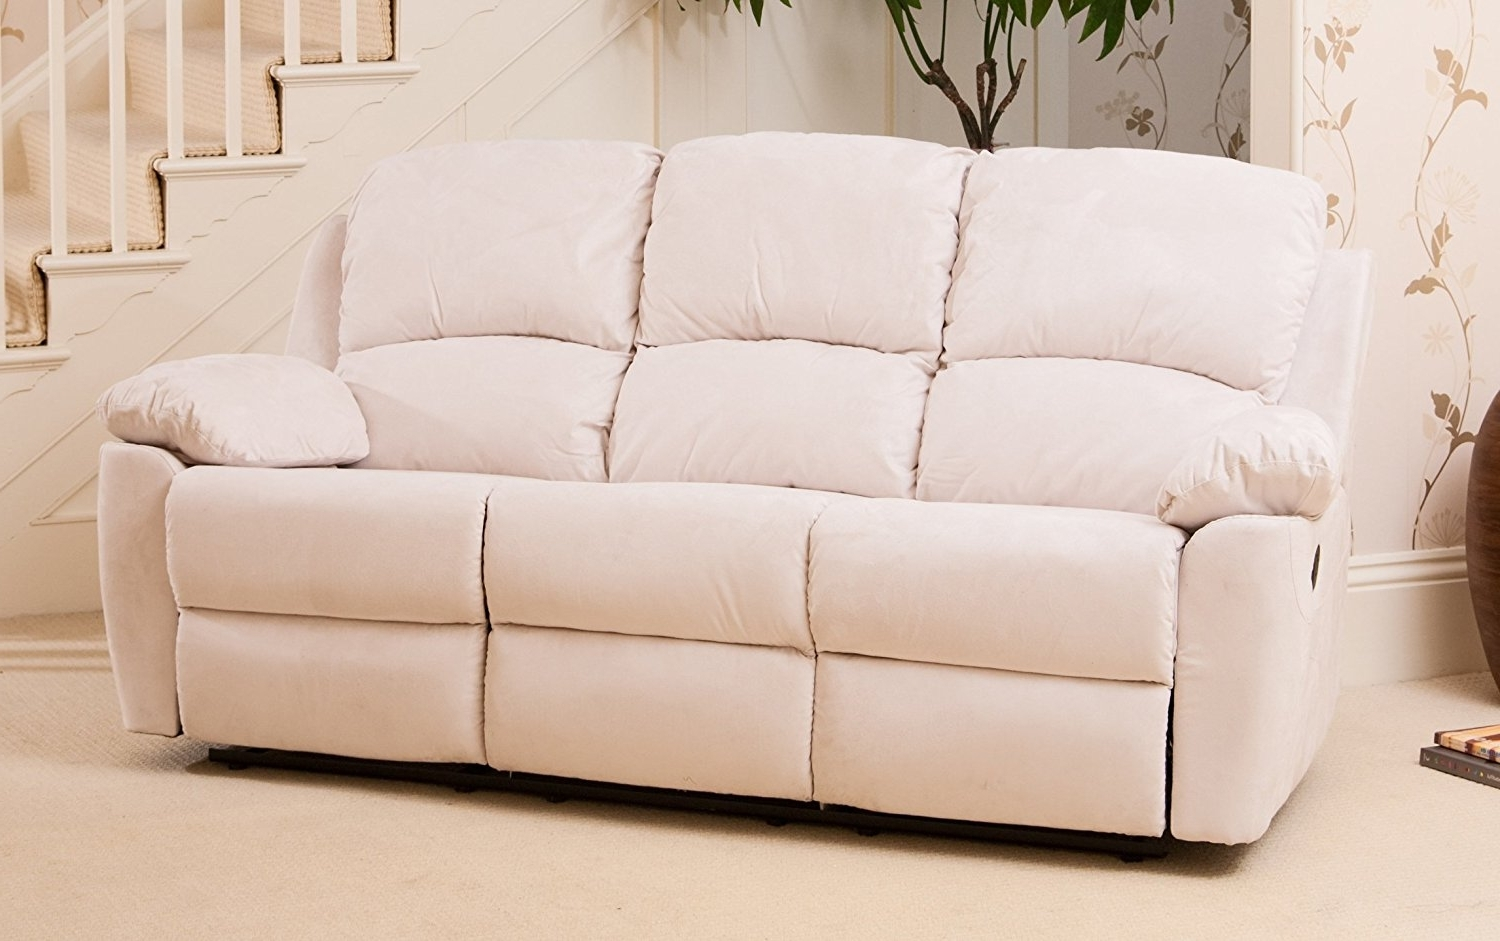 Most Popular Sectional Sofas At Sam's Club Throughout Sofa : Sam's Club Buck Fabric Reclining Sofa Corner Fabric (View 8 of 20)